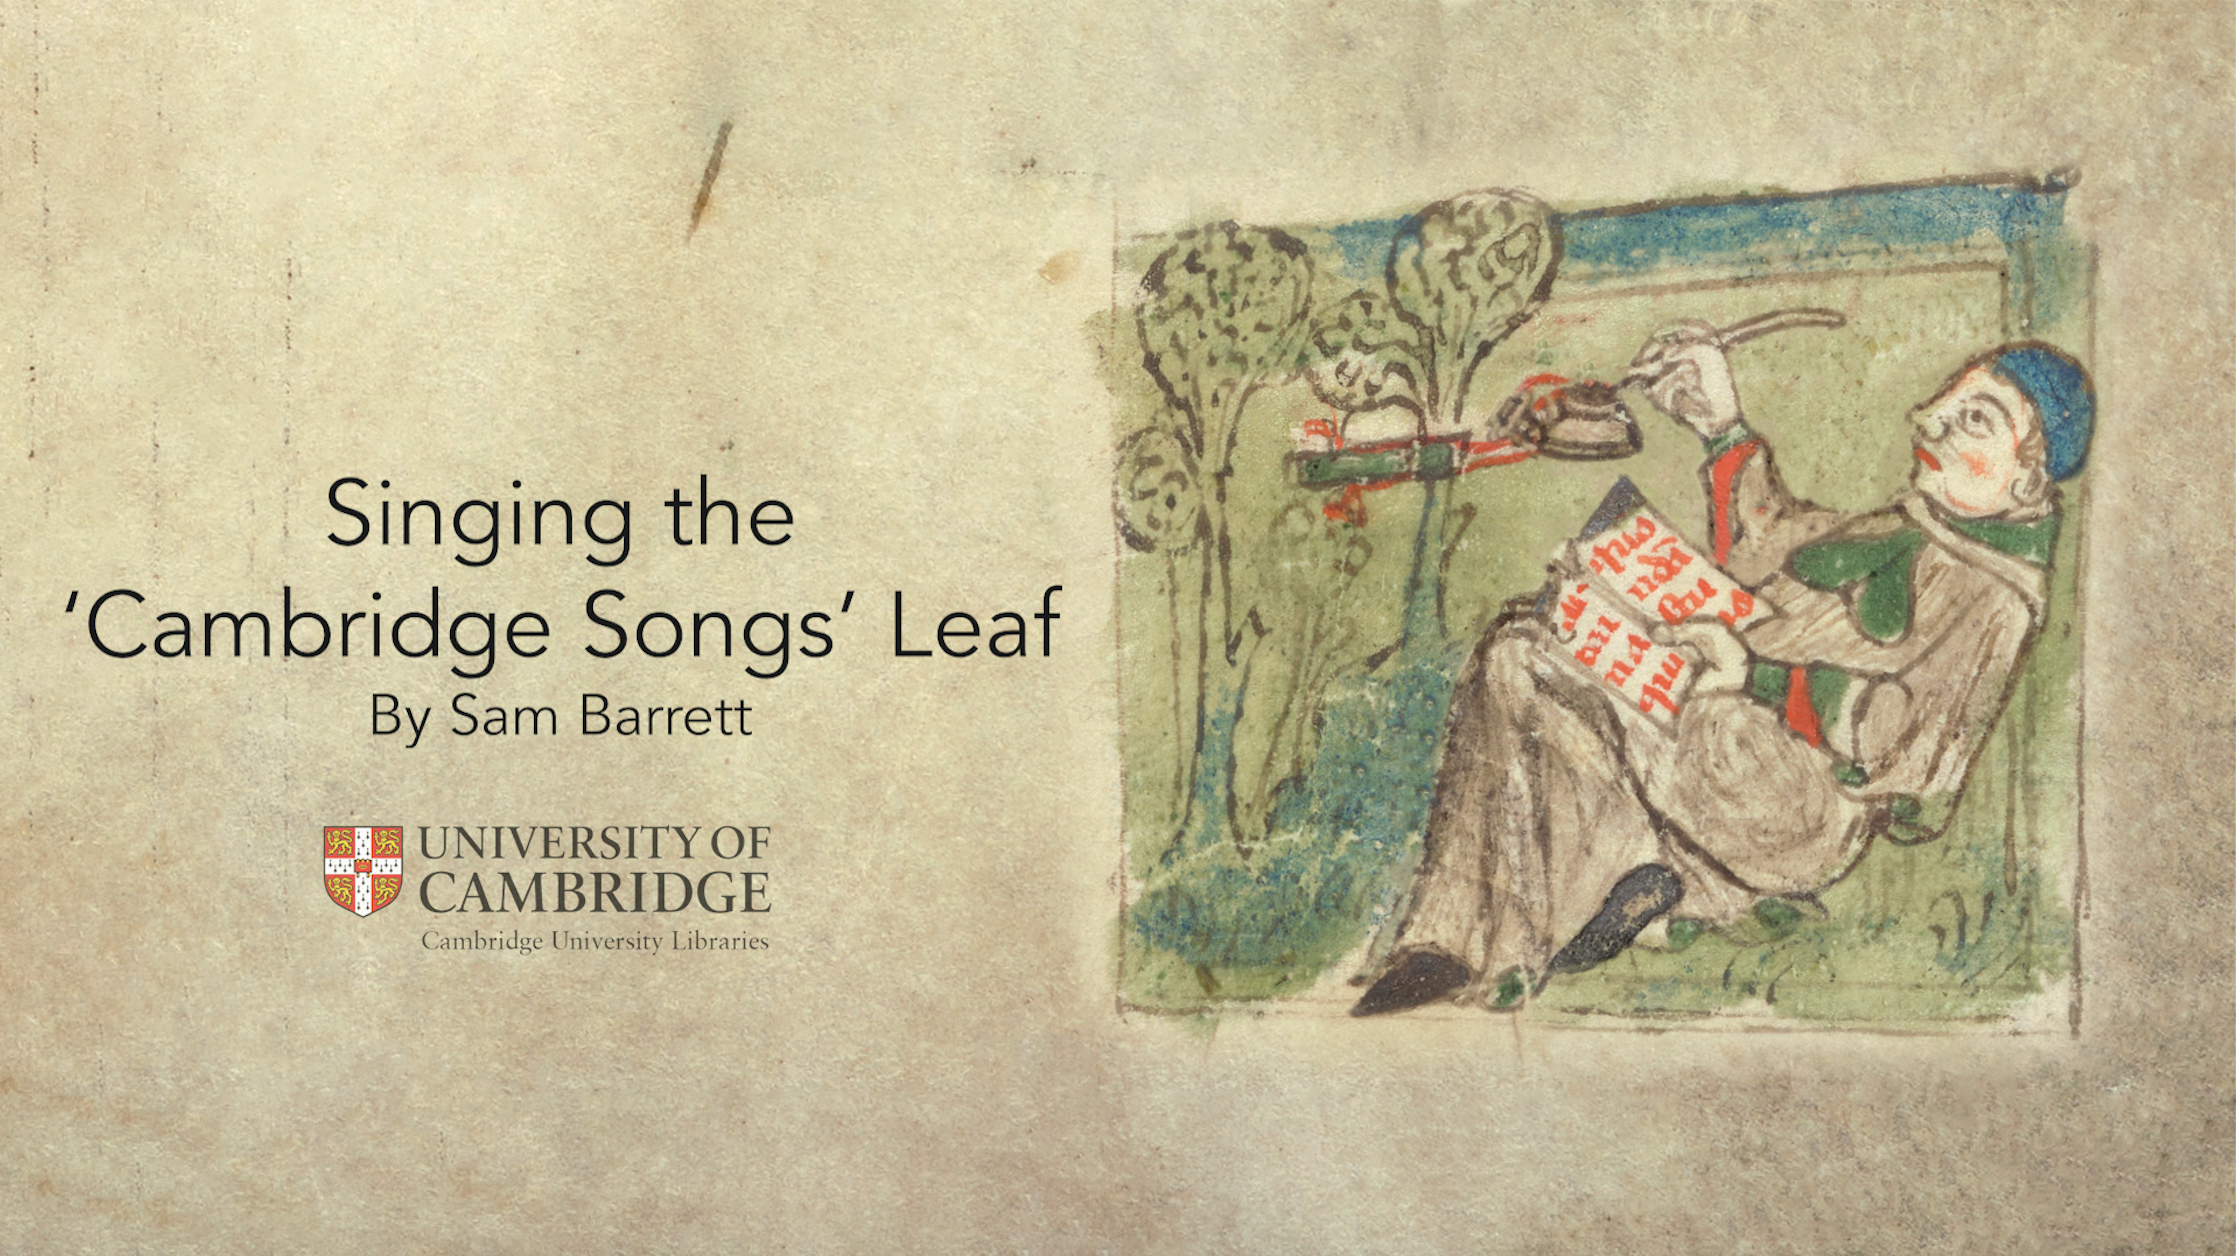 Singing Boethius's Lost Songs: New Videos Bring Neumes to Life